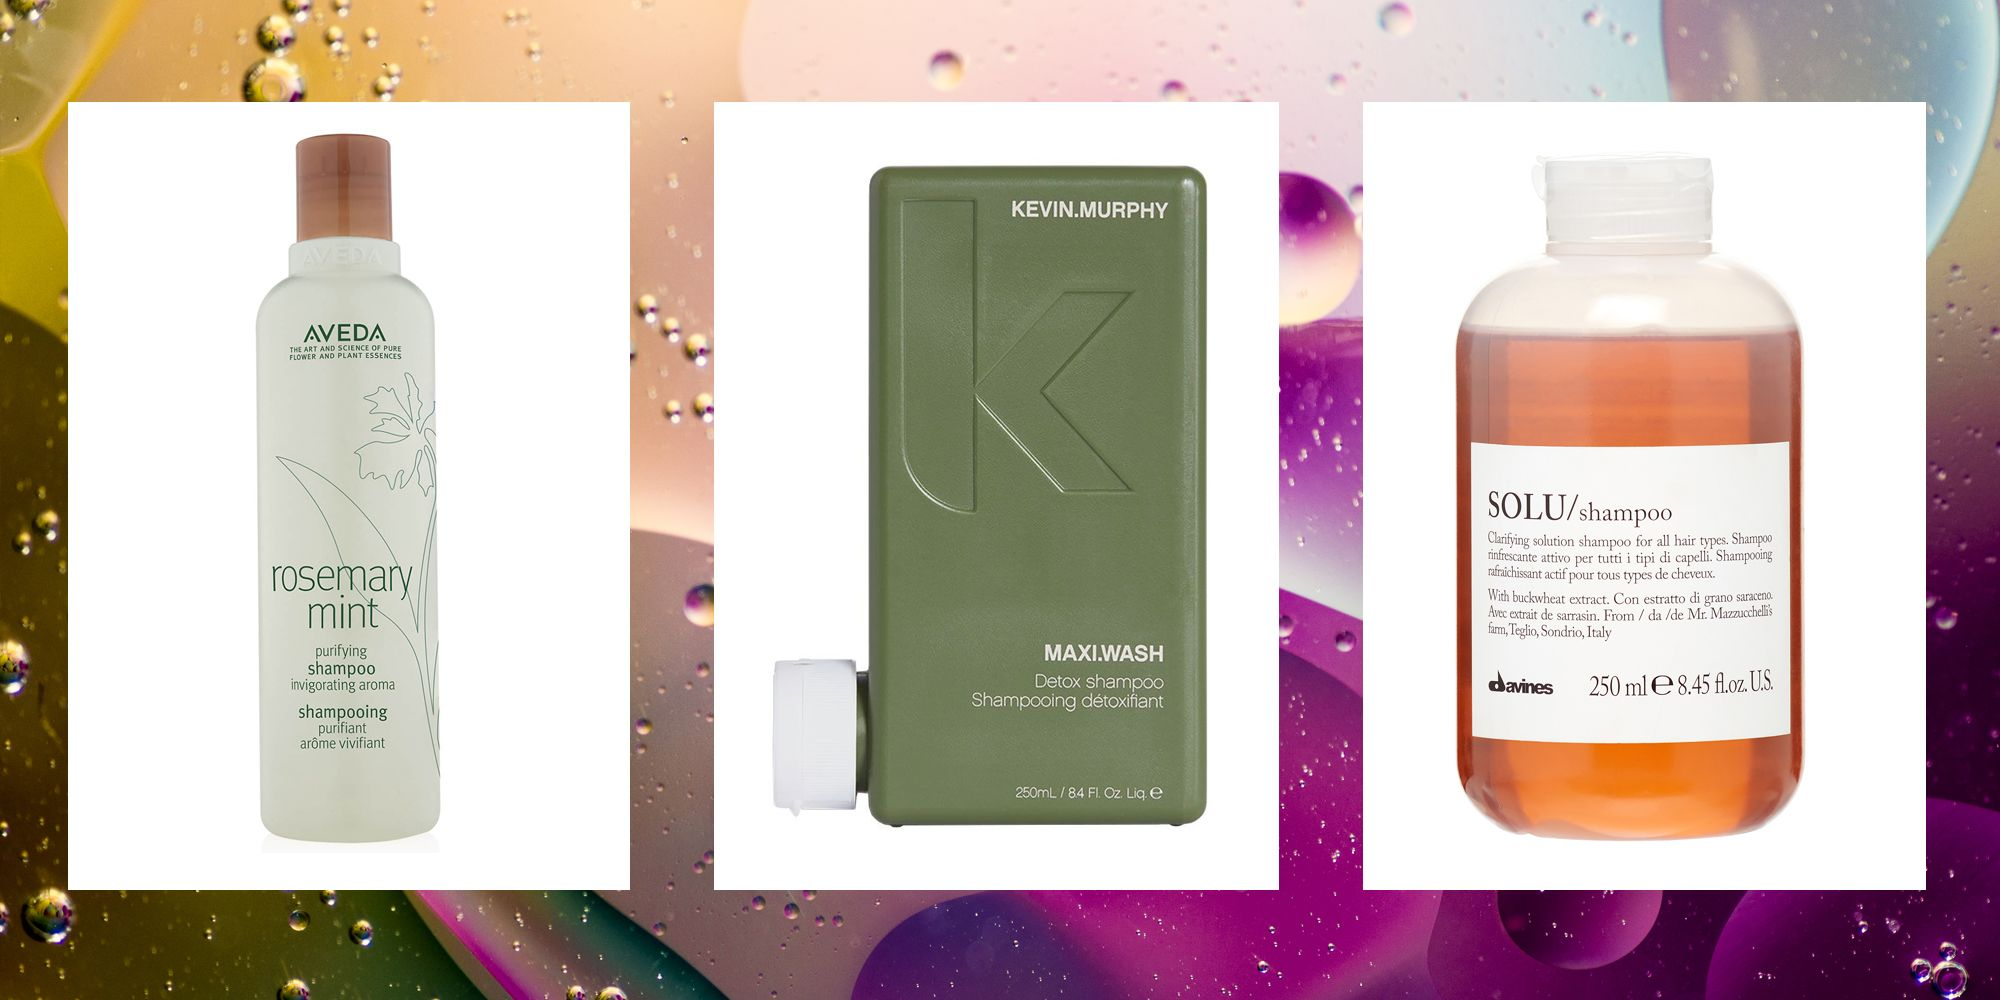 Best shampoo for greasy hair 2019 - 9 formulas tested by us